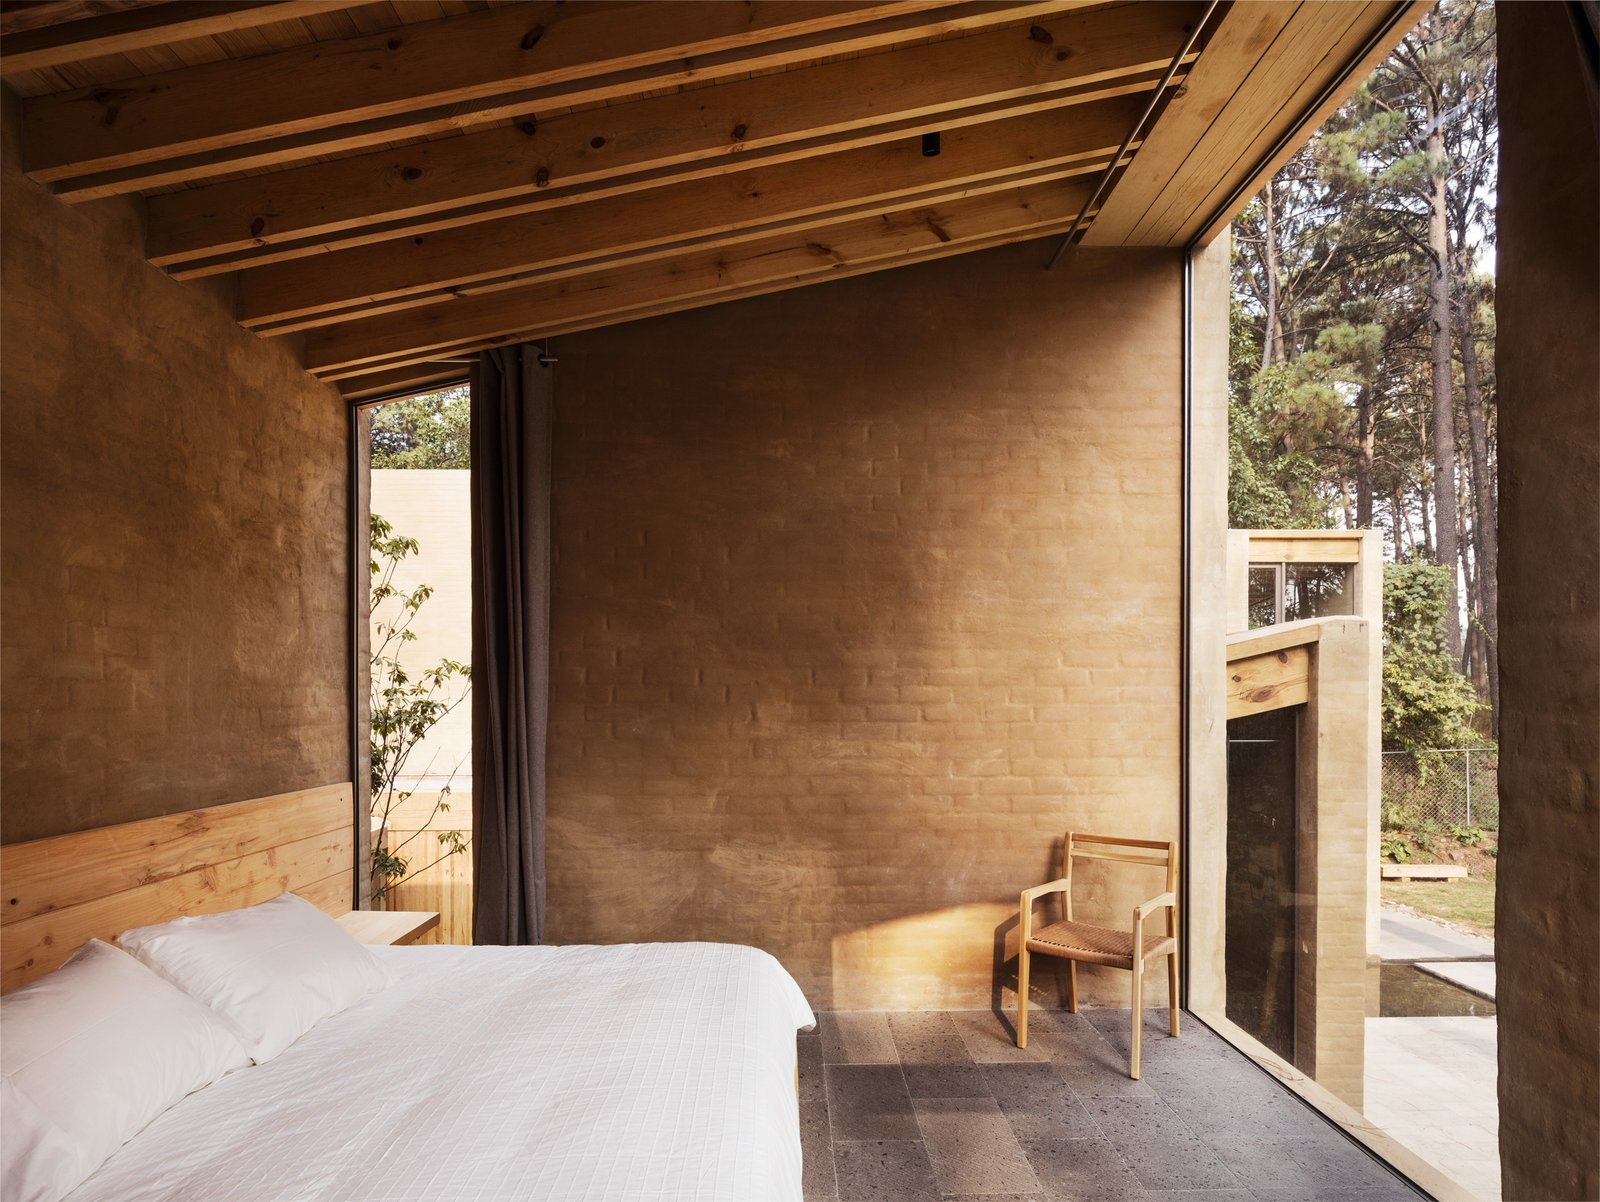 Bedroom, Bed, and Chair A sun-drenched bedroom on the ground level.  Photos from Five Cubist Hideaways Peek Out From a Mexican Pine Forest